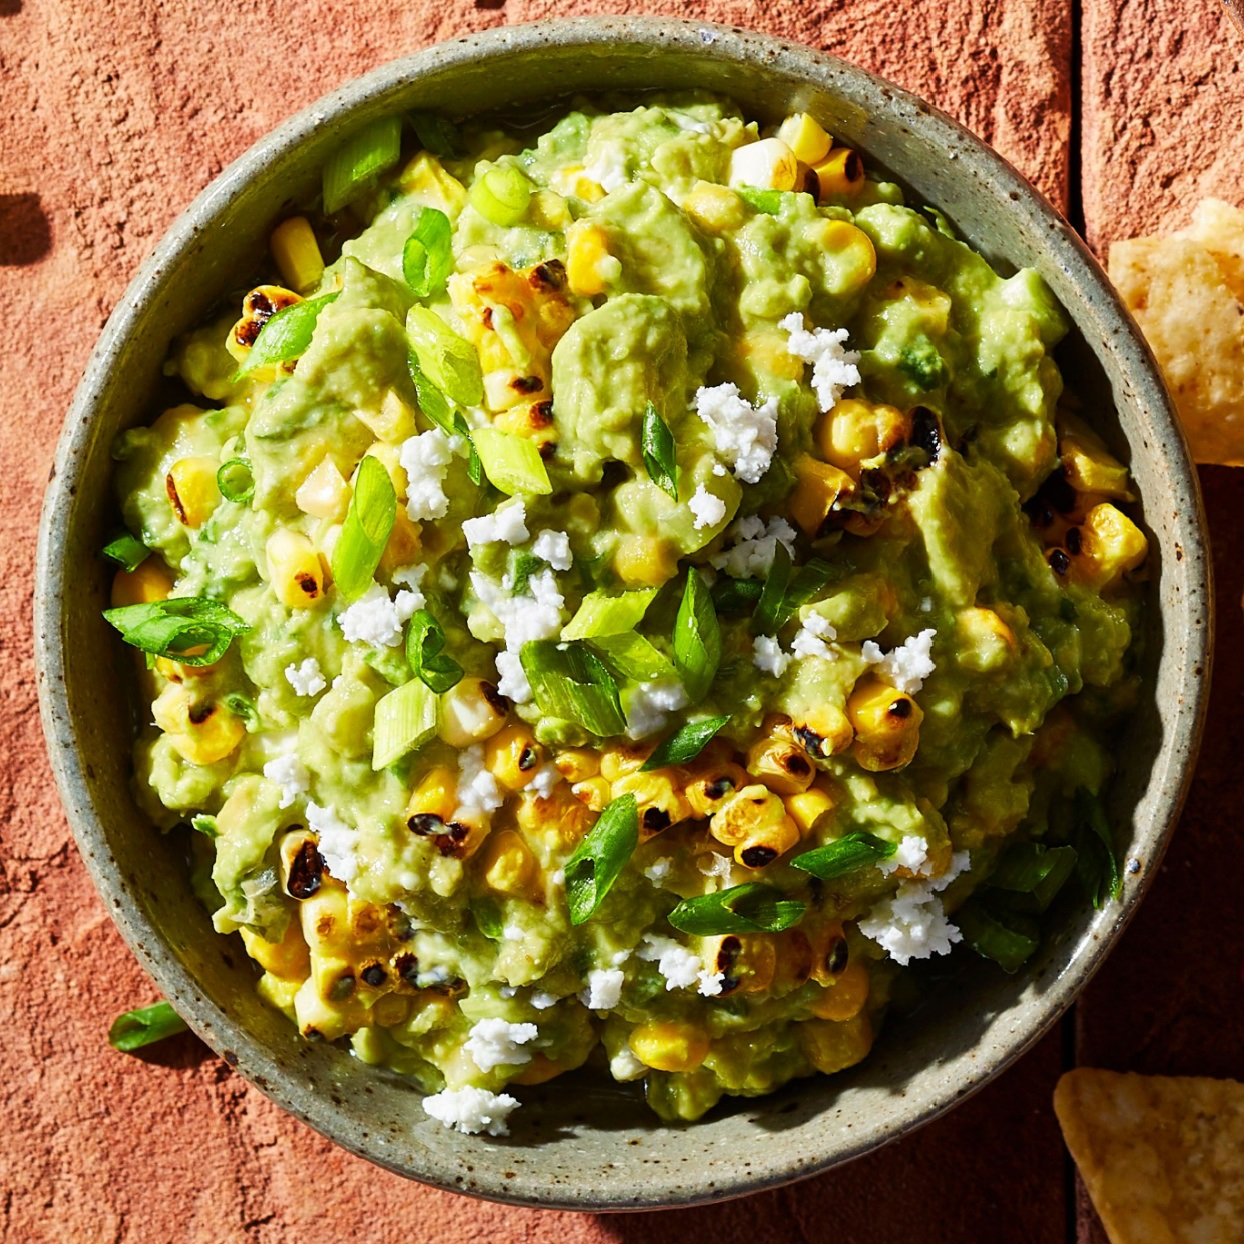 guacamole with roasted corn, green onion, goat cheese, and serrano pepper in a bowl